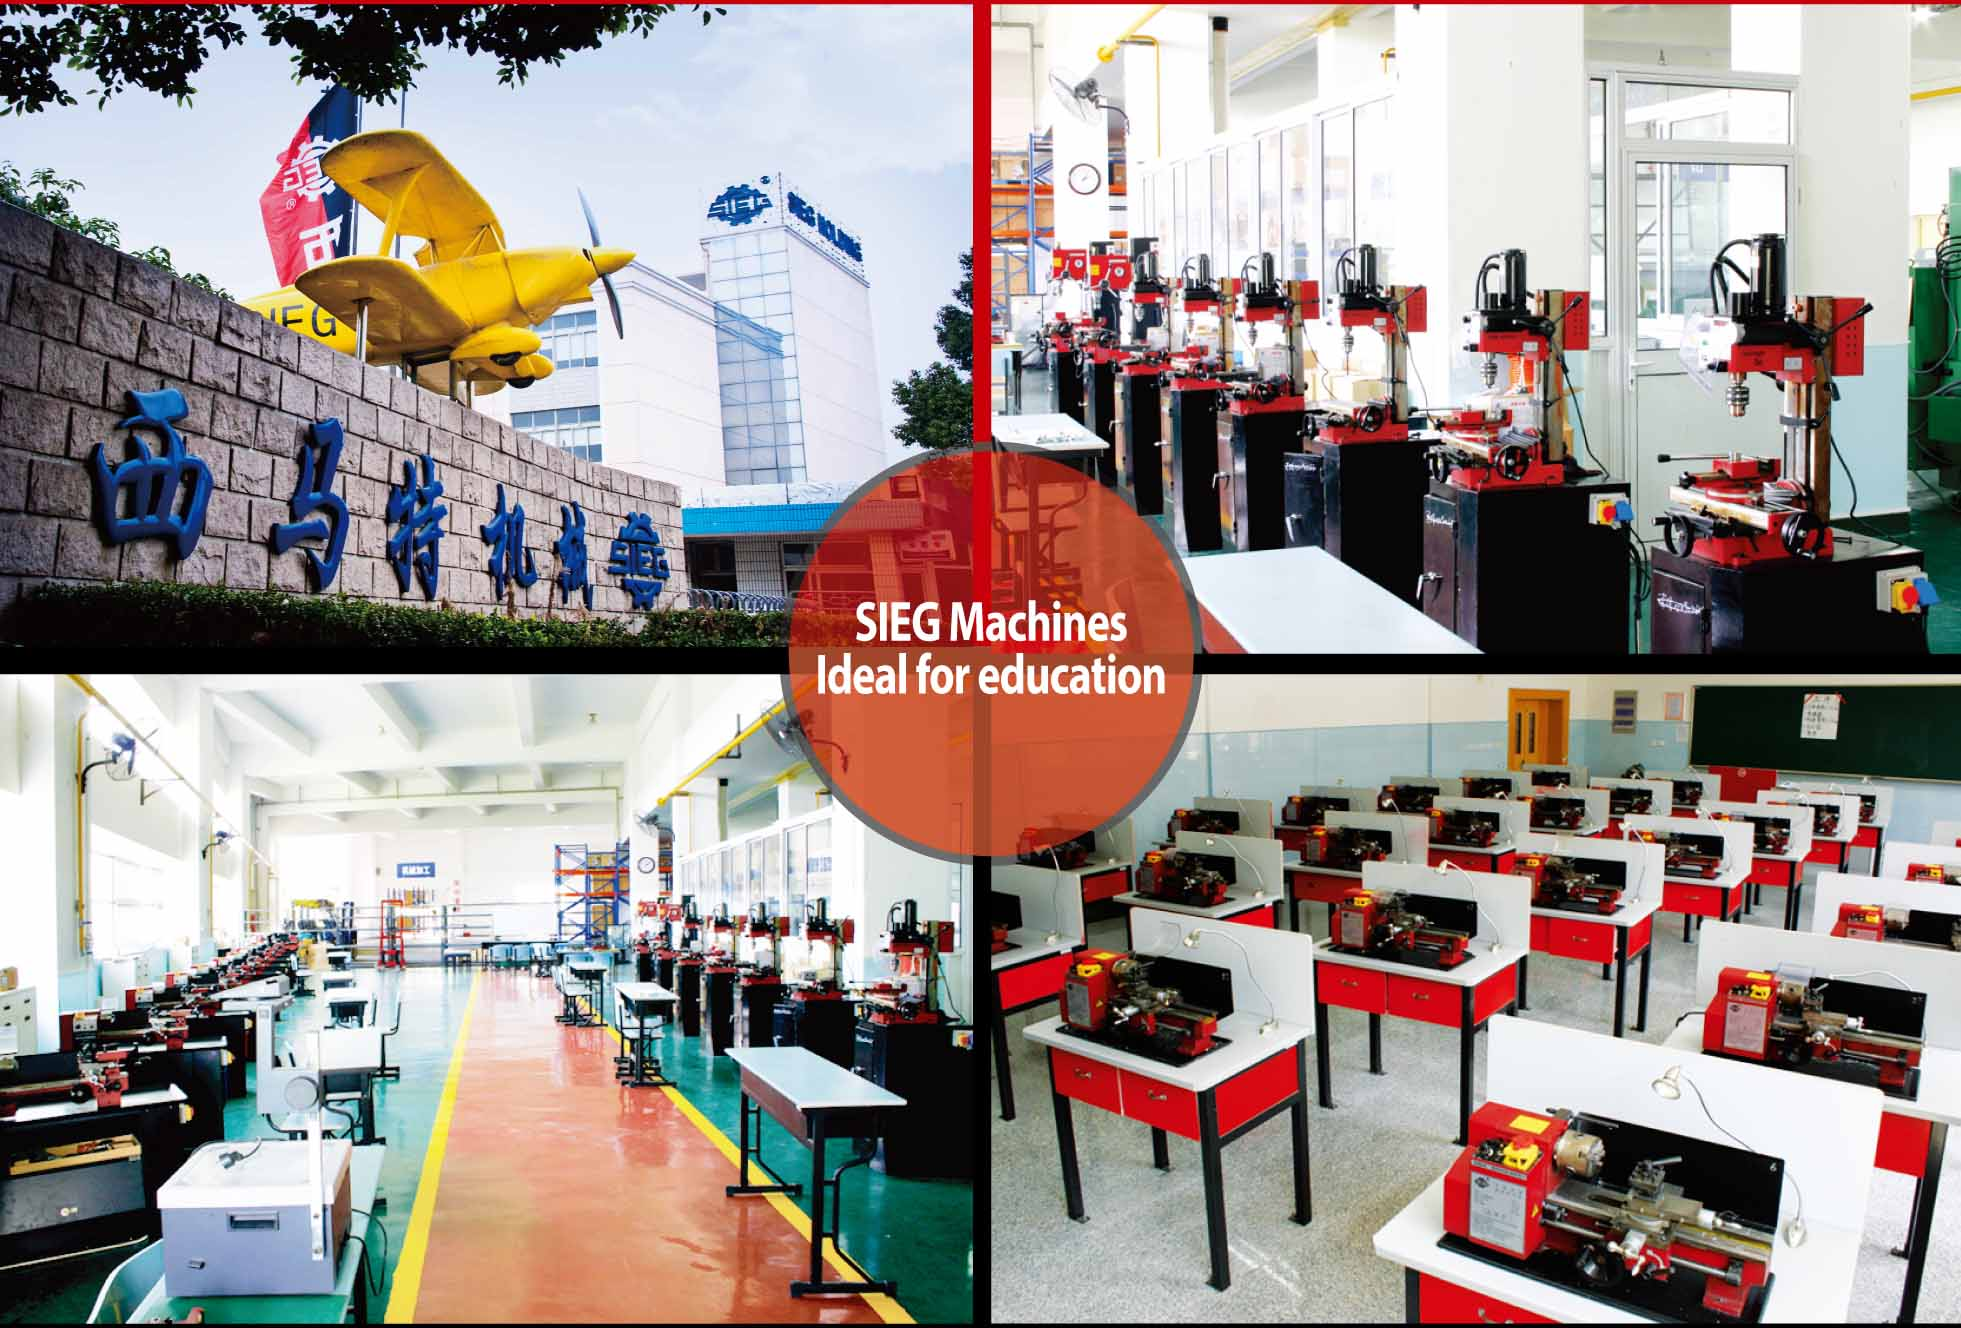 SIEG Machines Being Used in NTU Skill Center